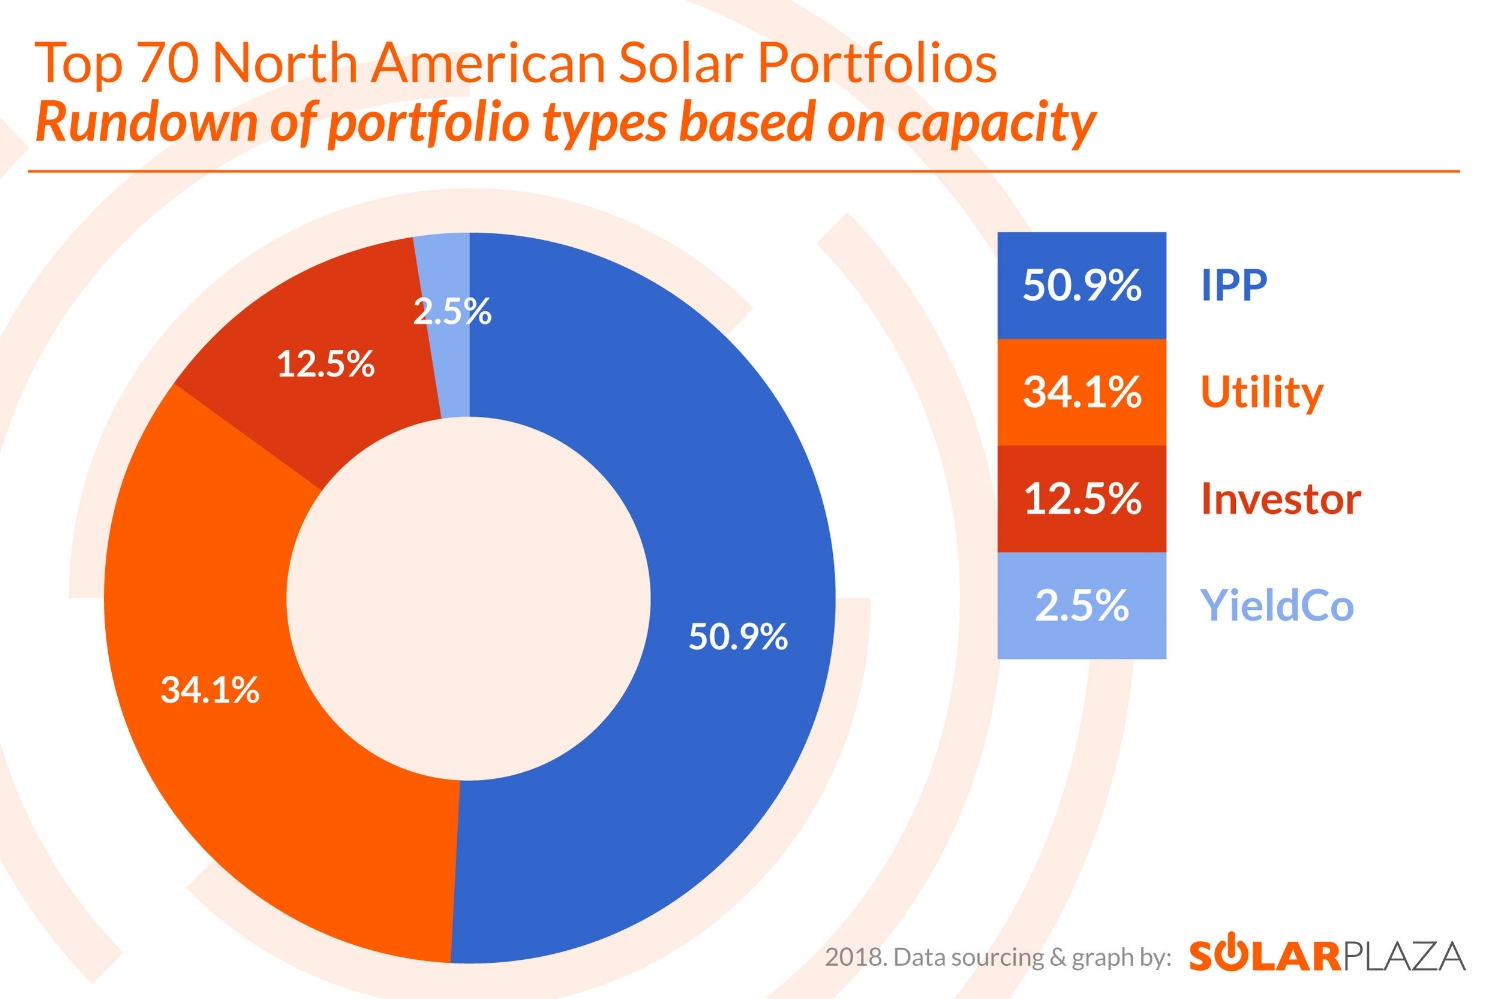 Figure 1: Top 70 North American Solar Portfolios- Rundown of portfolio types based on capacity